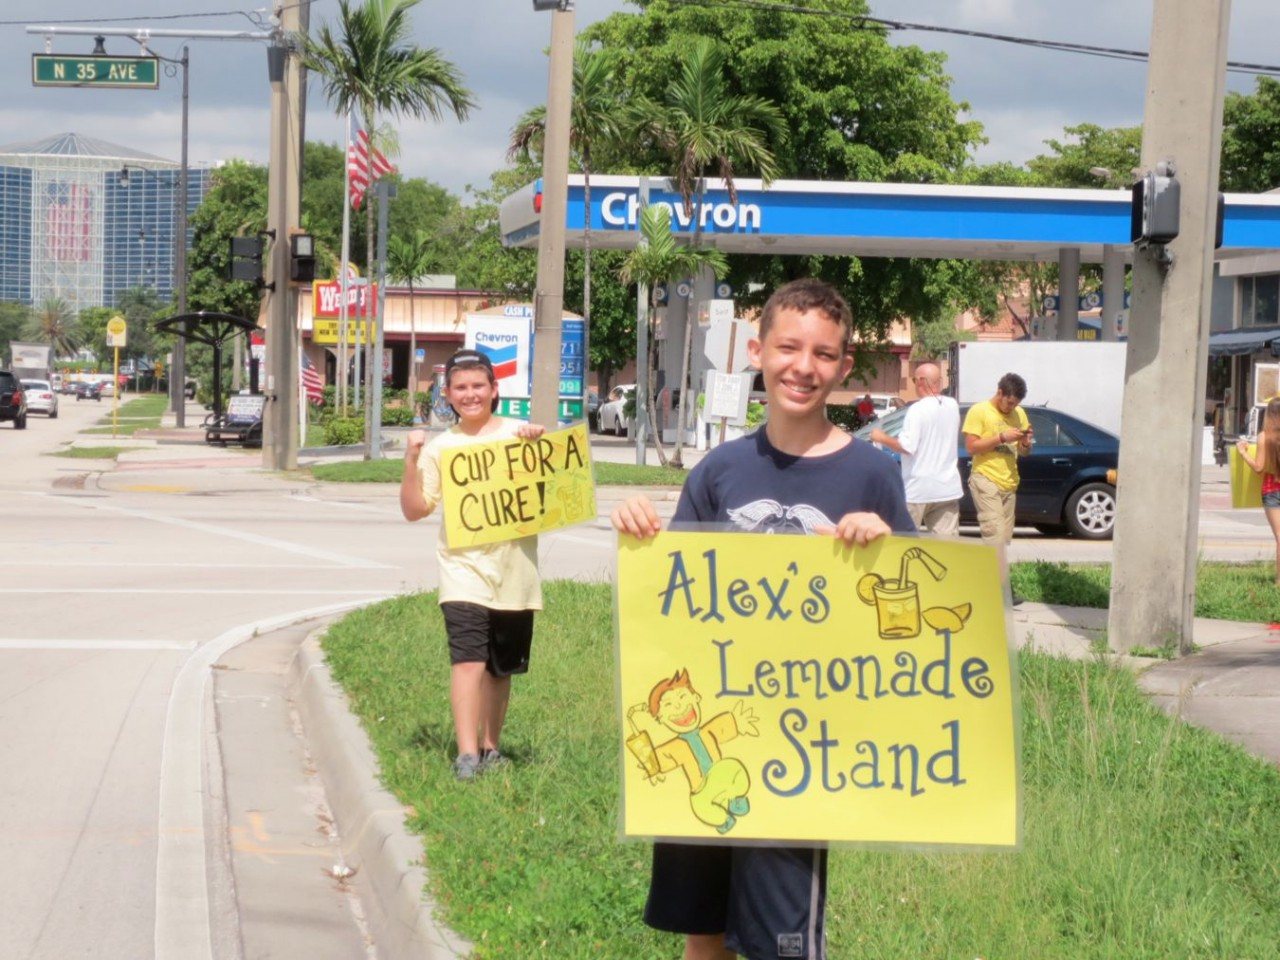 Alex's Lemonade 03